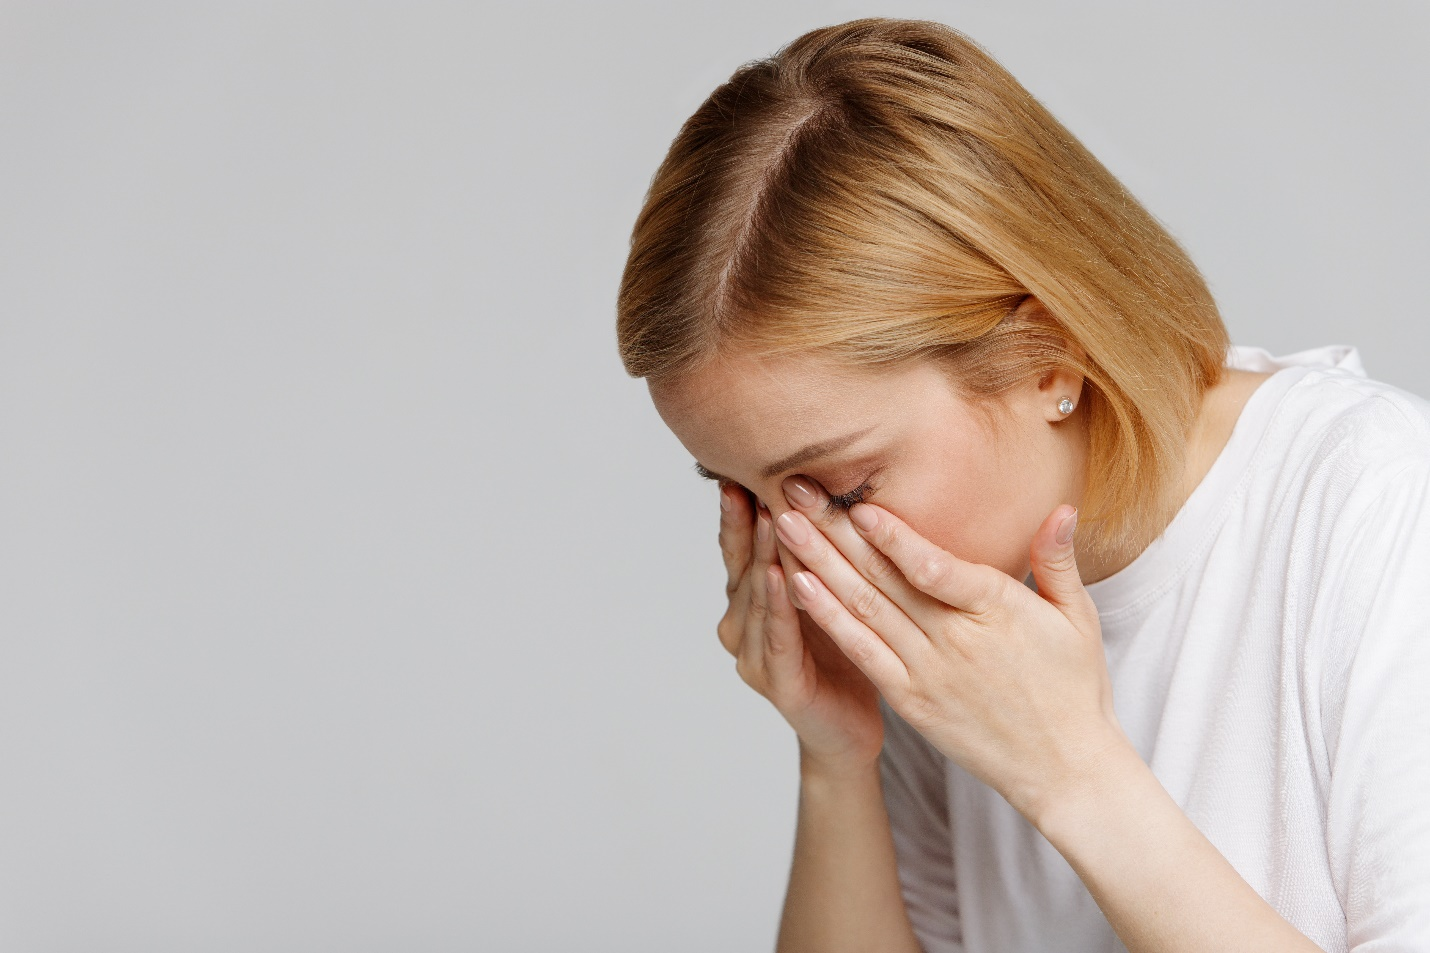 Young woman rubbing her swollen eyes due to pollen